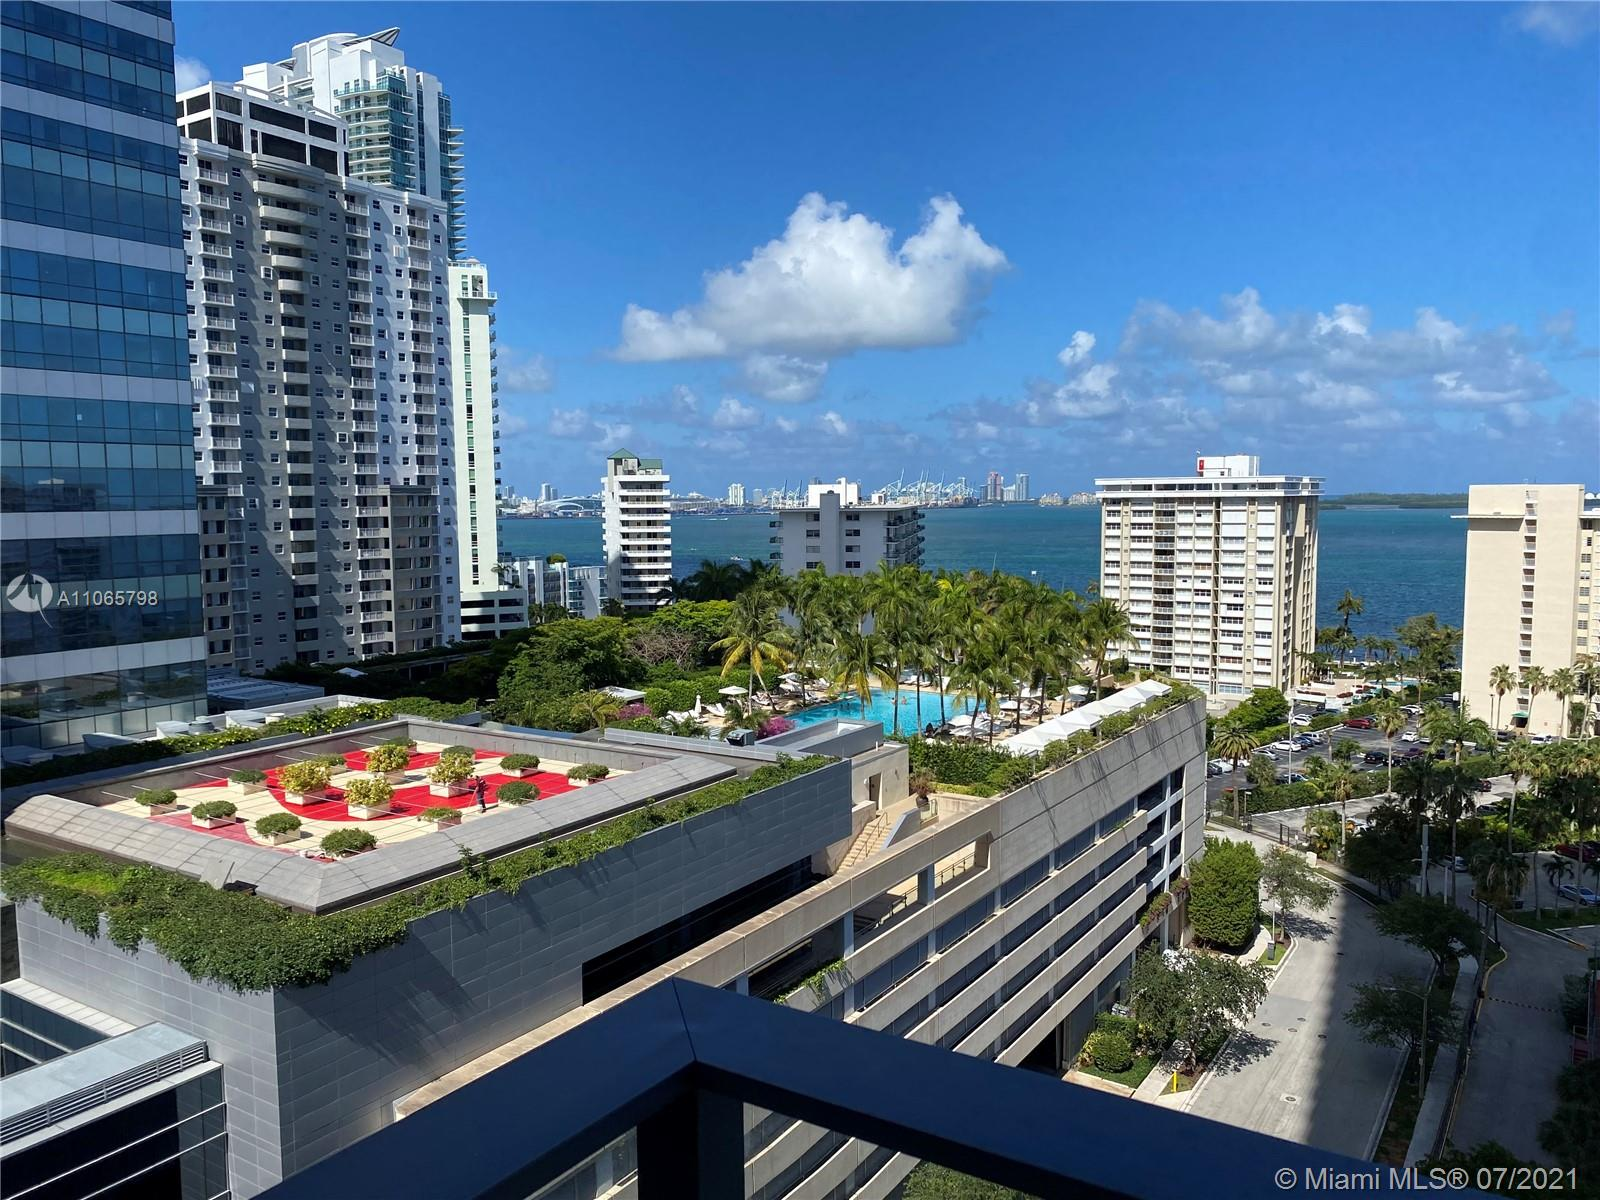 """UNIQUE OPPORTUNITY AT ECHO BRICKELL. Luxury corner 2/2.5 unit located in Brickell. 3 PARKING SPOTS, 1 STORAGE, CALIFORNIA CLOSETS, CUSTOMIZE ELECTRIC BLACKOUT BLINDS, KITCHEN ISLAND. Complementary Bikes, Dog Walking and limousine service """"5 radio miles"""" away. Views of the BAYS and Miami´s famous sky line from dusk till dawn from exclusive expansive terraces, inside you will find marble through, 10'' high with floor to ceiling windows. SAVANT System, controls audio, lighting, wall treatments & valet parking. Kitchen has Italian glass cabinetry, marble countertops & top-of-the-line Wolf & Bosch Sub Zero appliances, built-in coffee machine. Art gym, infinity edge pool and hot tub Jacuzzi. The HOA include: Cable 200 channels, water, internet 1GB, Concierge 24 hour."""